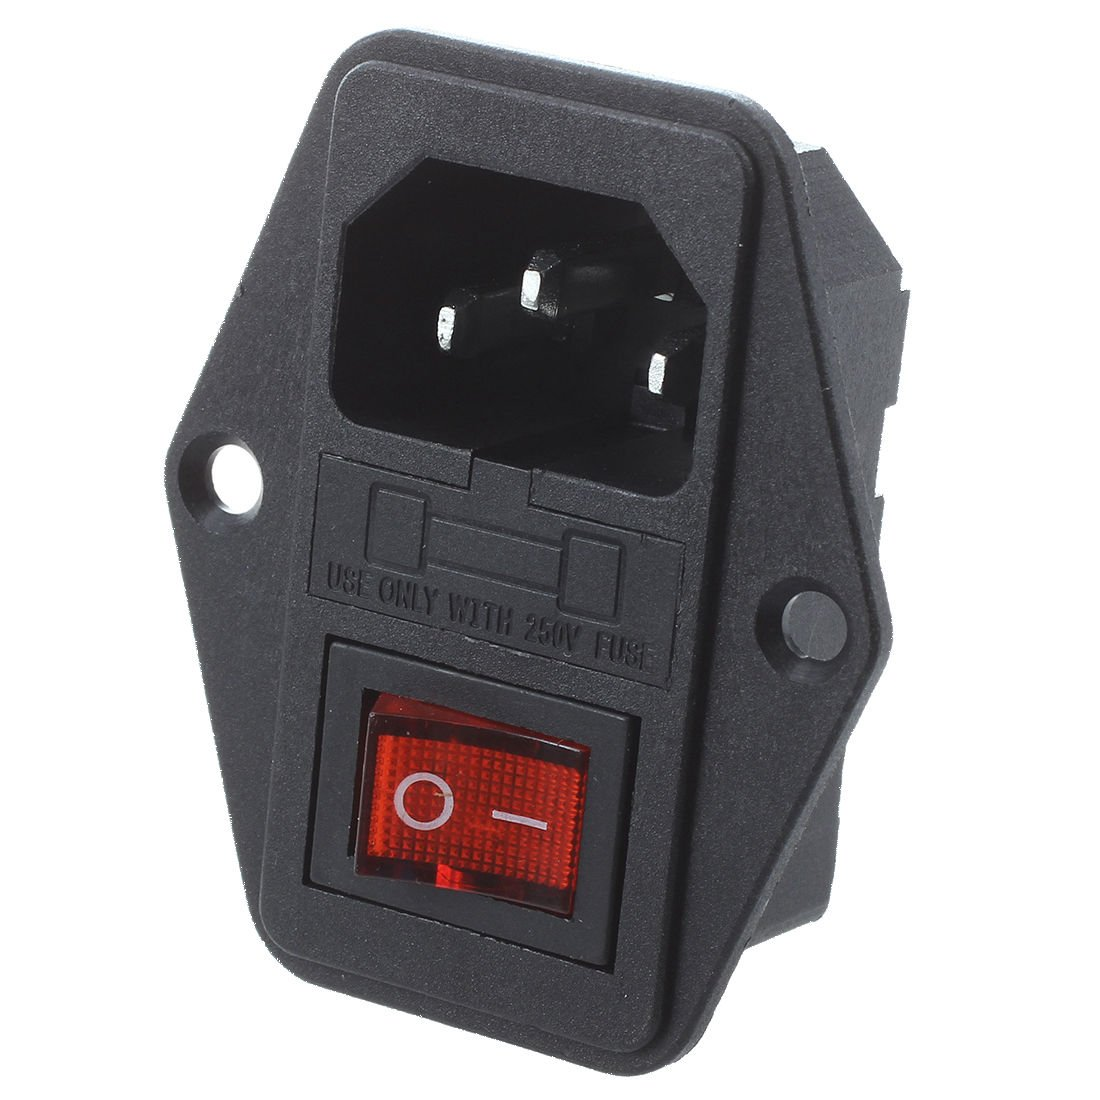 SODIAL(R) Black Plastic Housing AC 250V 15A 3 P C14 Power Socket w Rocker Switch